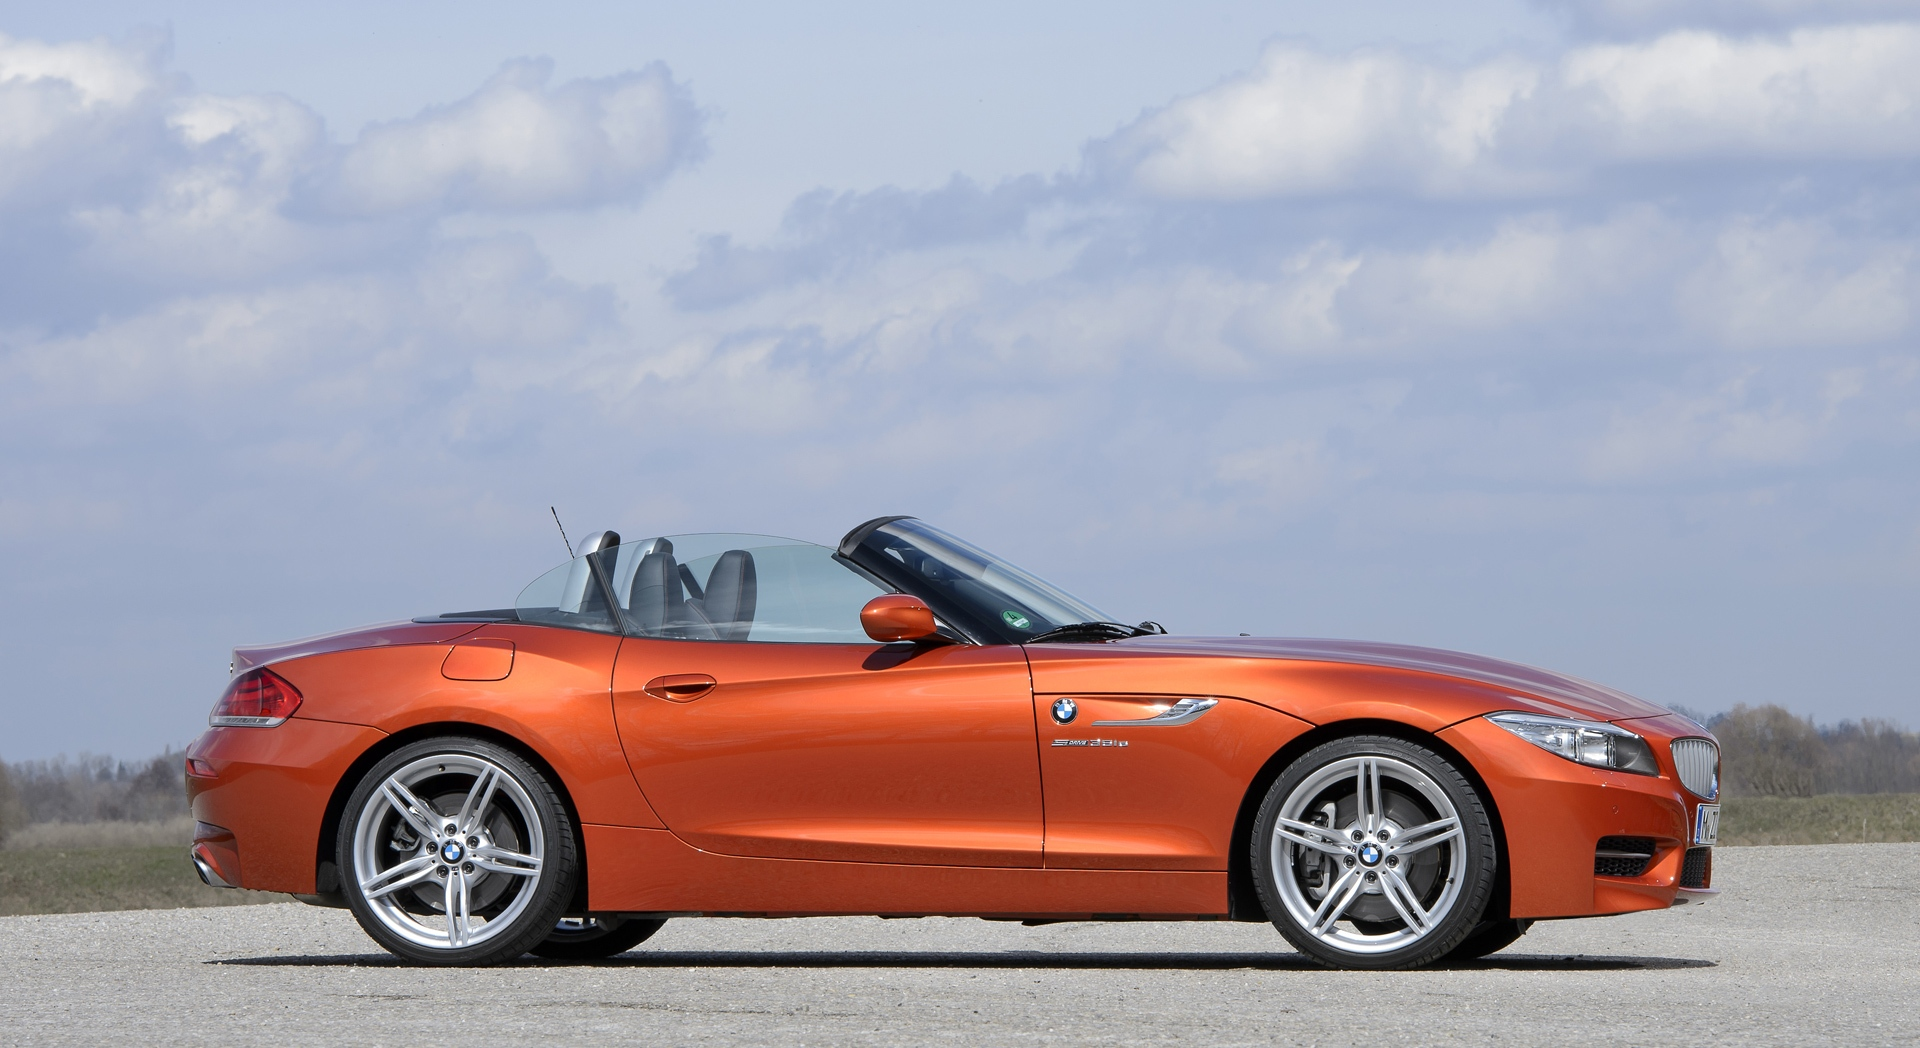 bmw z4 orange sides